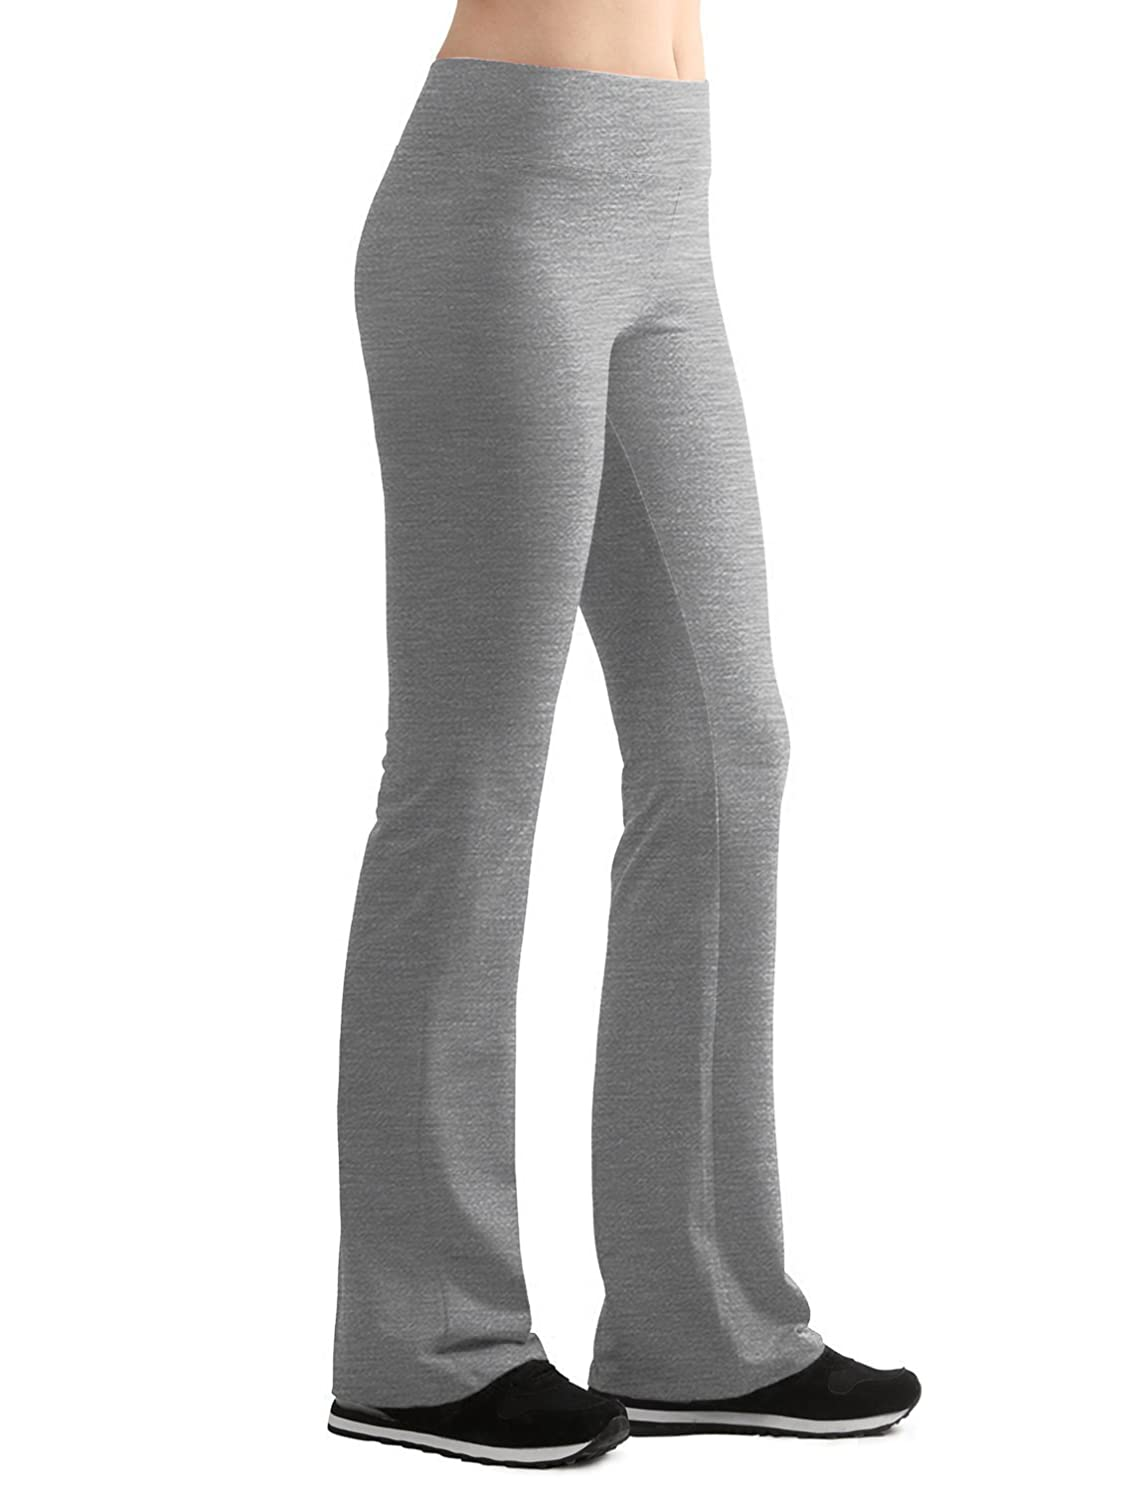 Lock and Love Women's Cotton Span Strech Slim-Fit Bootleg Yoga Pants S-XXXL Made in USA